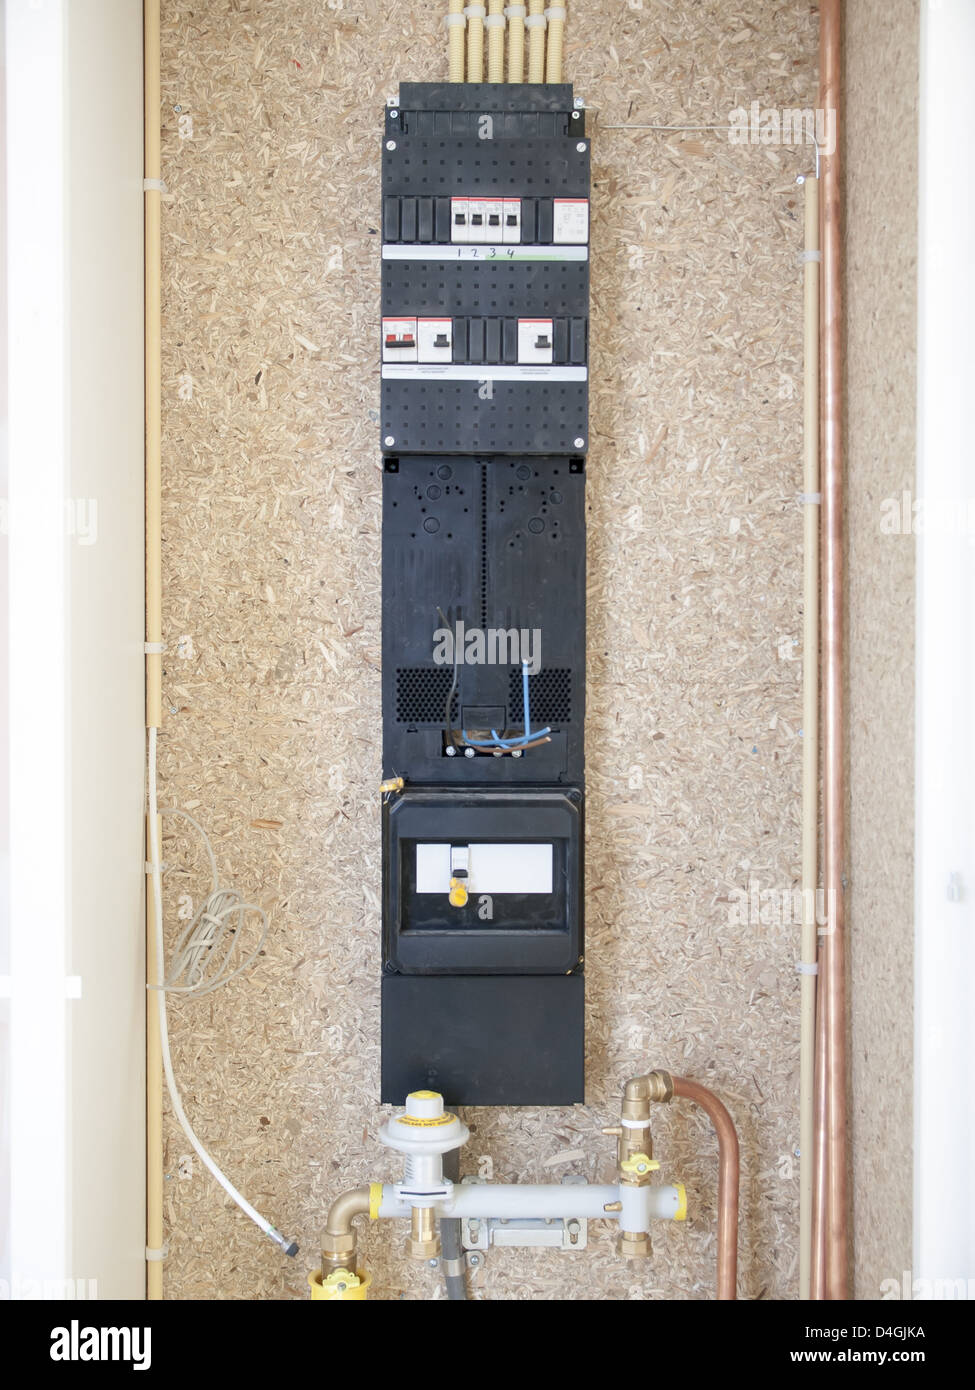 medium resolution of meter fuse box in a house under construction